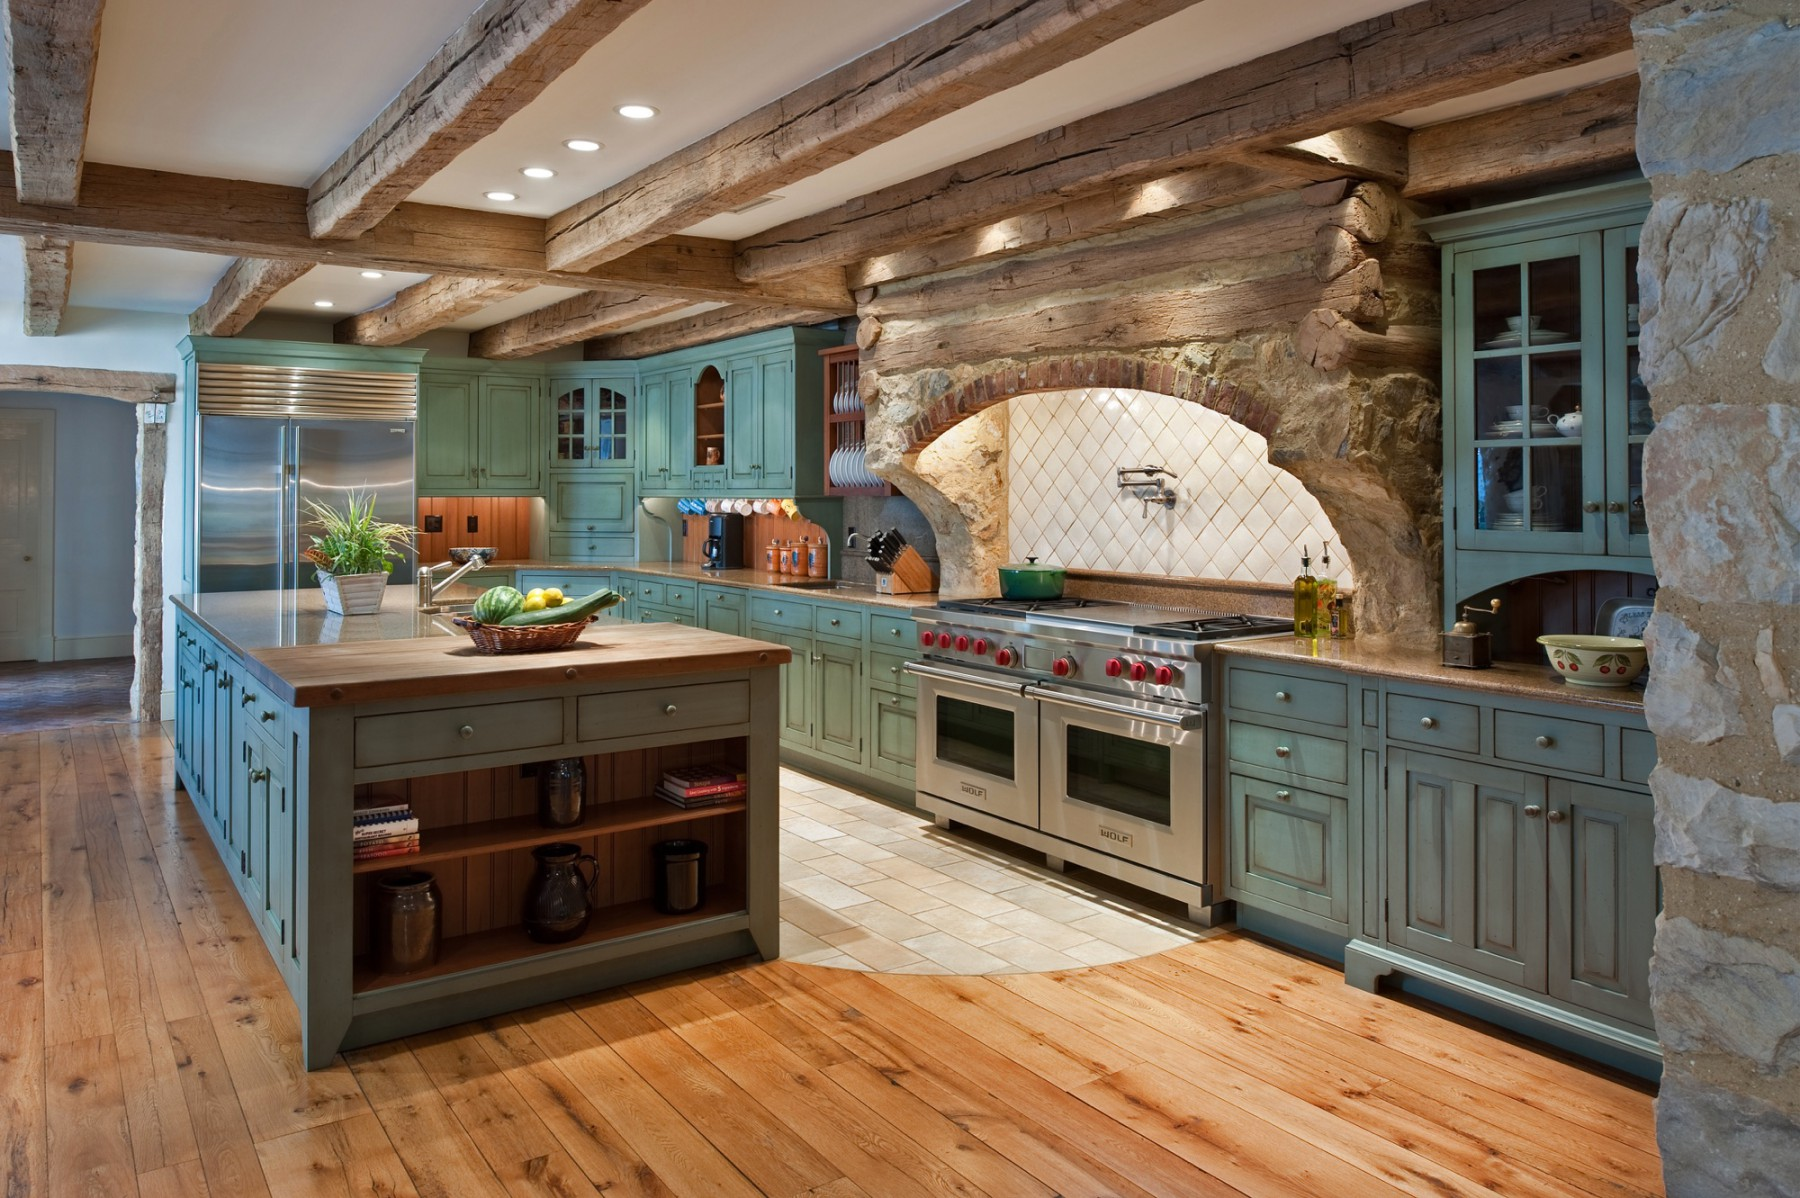 Top 20 Home Addition Ideas Plus Costs And Roi Details In 2021 Home Remodeling Costs Guide